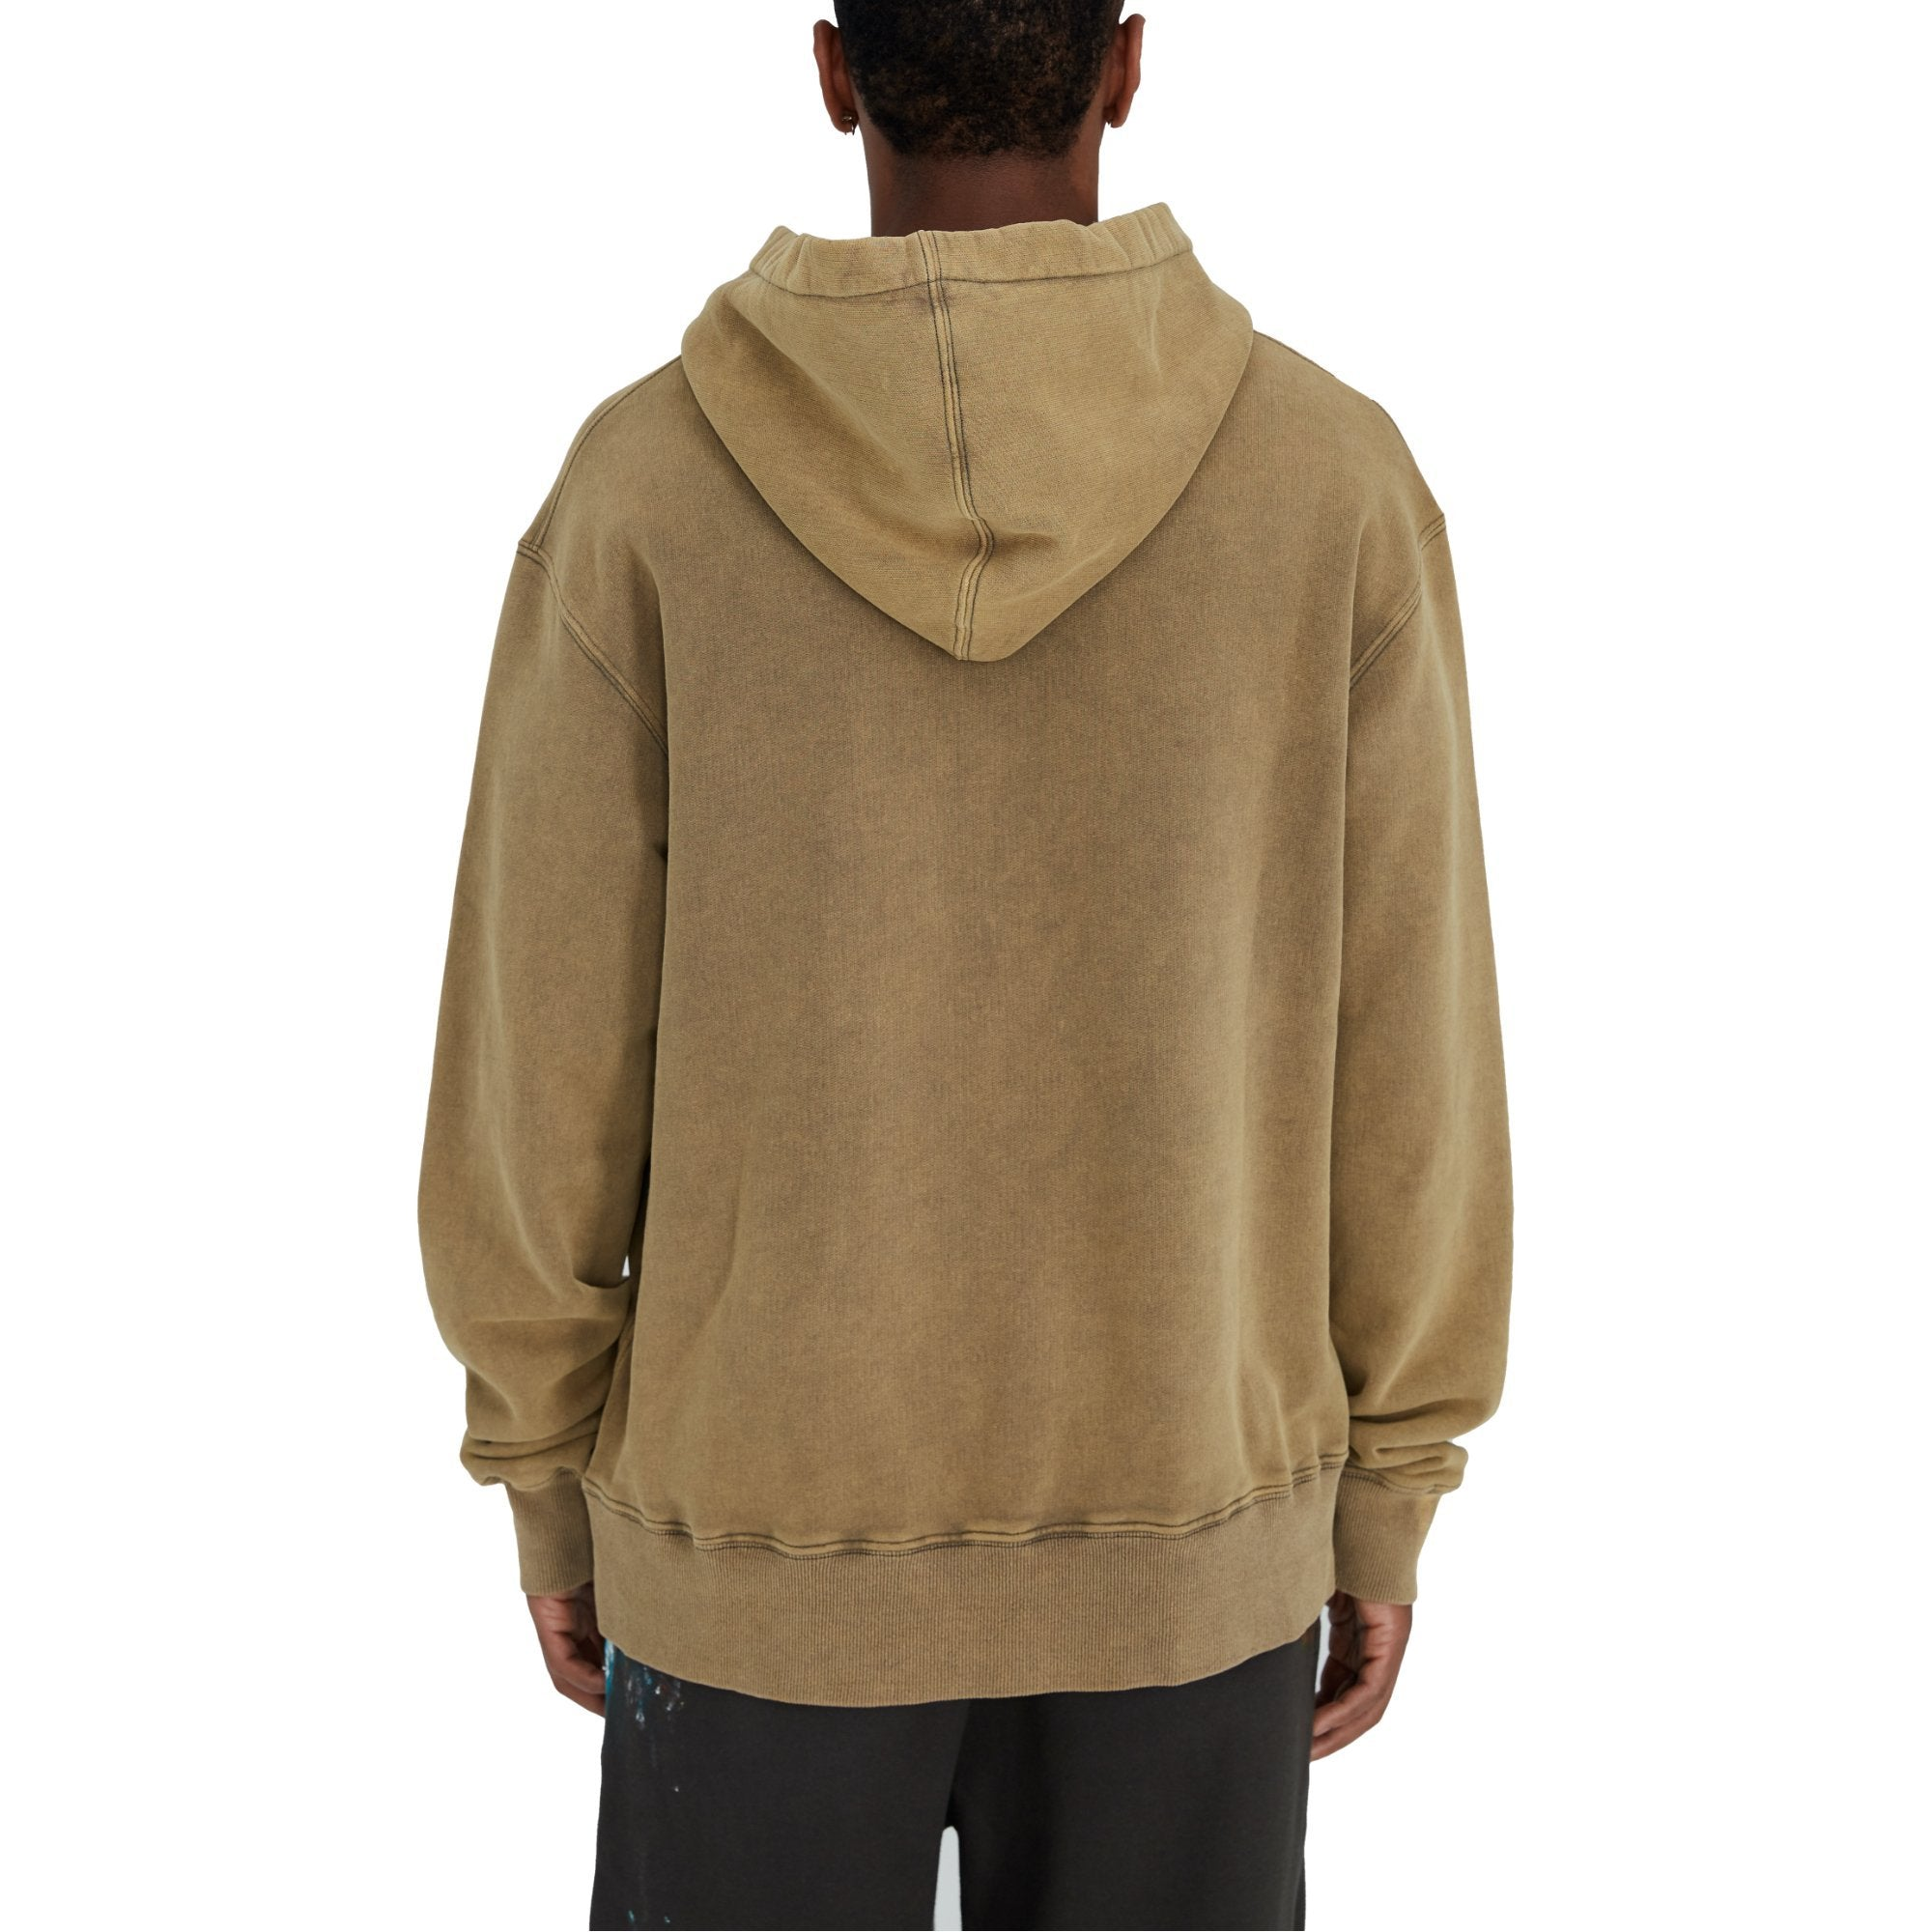 SAINT LOUIS Vintage Tan Object Dyded Hoodie | MADA IN CHINA